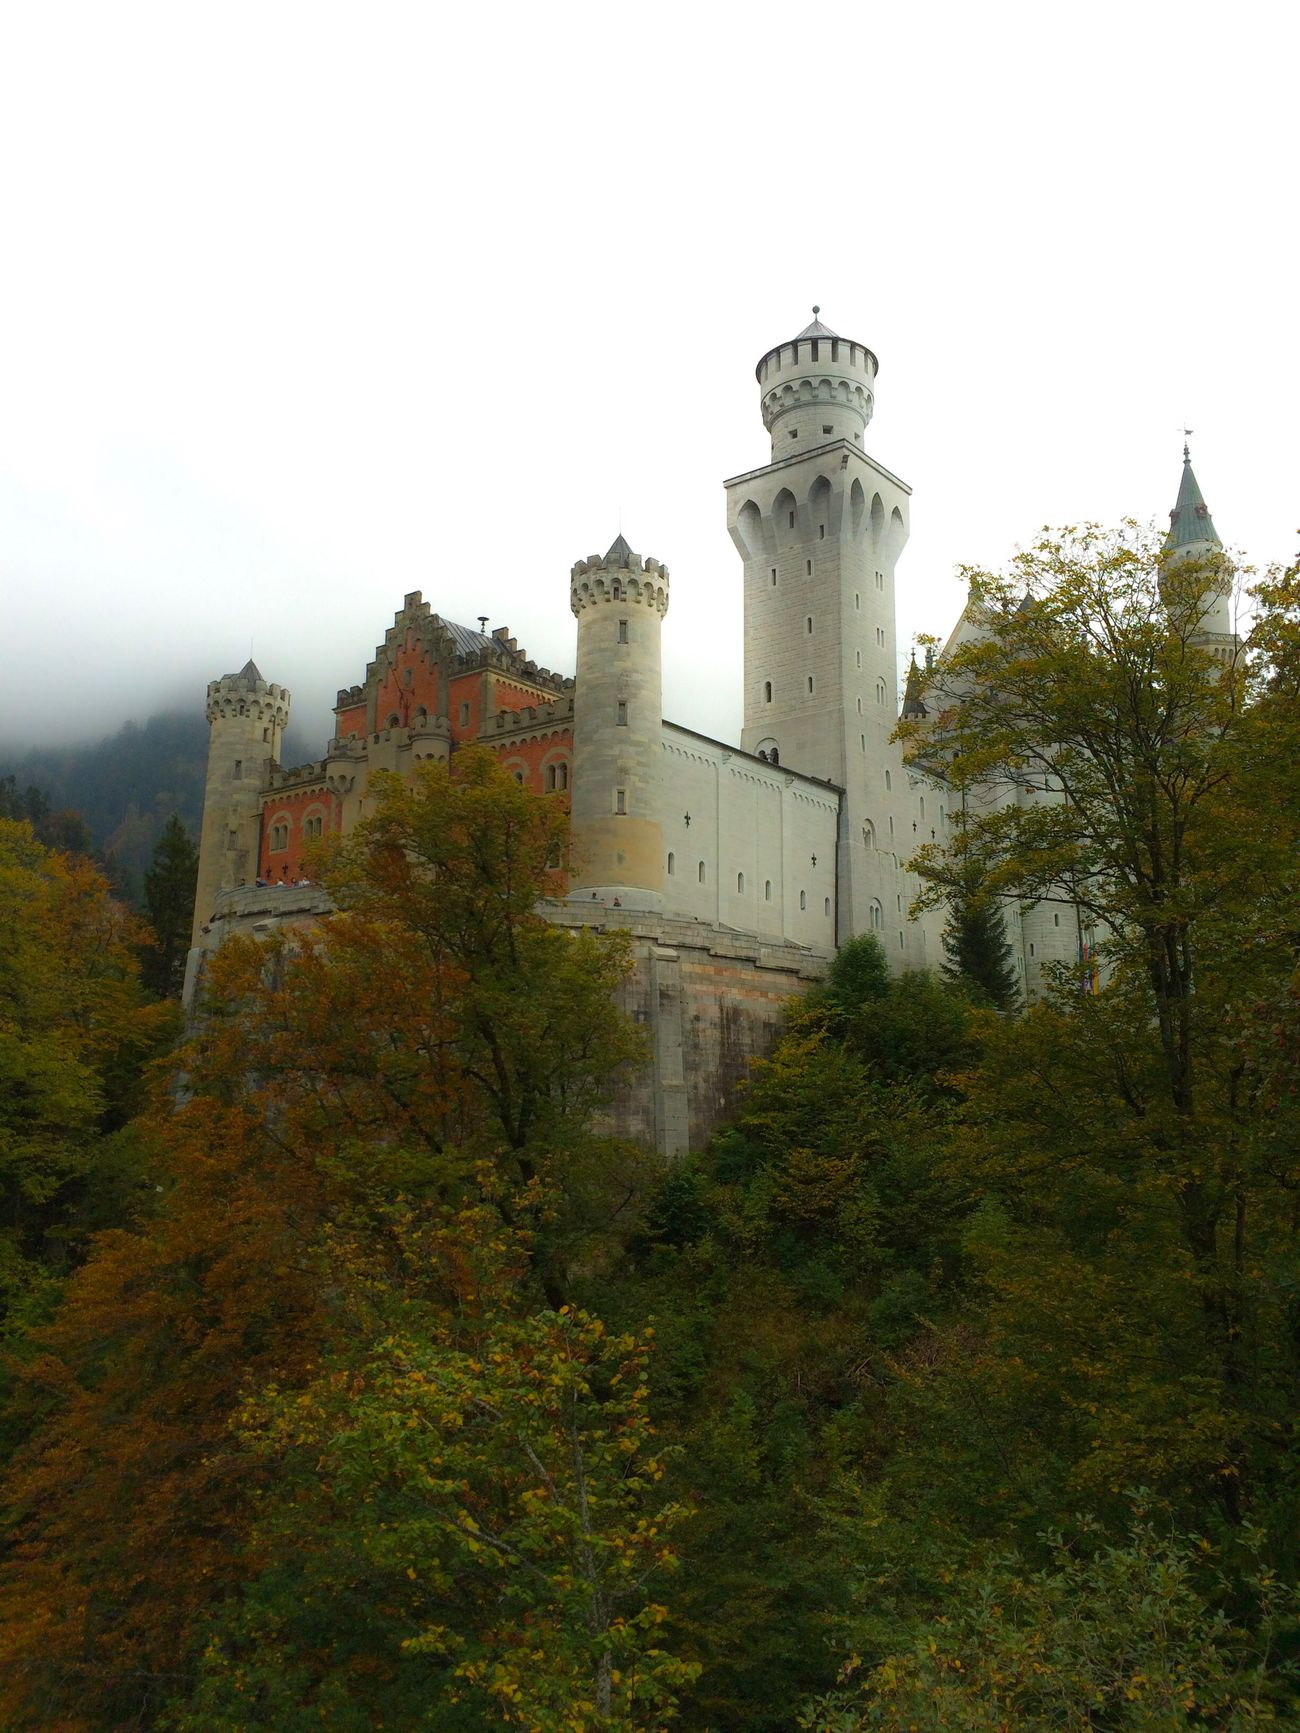 Schloss Neuschwanstein (I know not the most creative photo, but I kind of like it) Tree Building Exterior Architecture Built Structure Outdoors Sky Nature Day No People Low Angle View History Castle Forest Füssen, Bayern, Deutschland Schloss Neuschwanstein Neighborhood Map